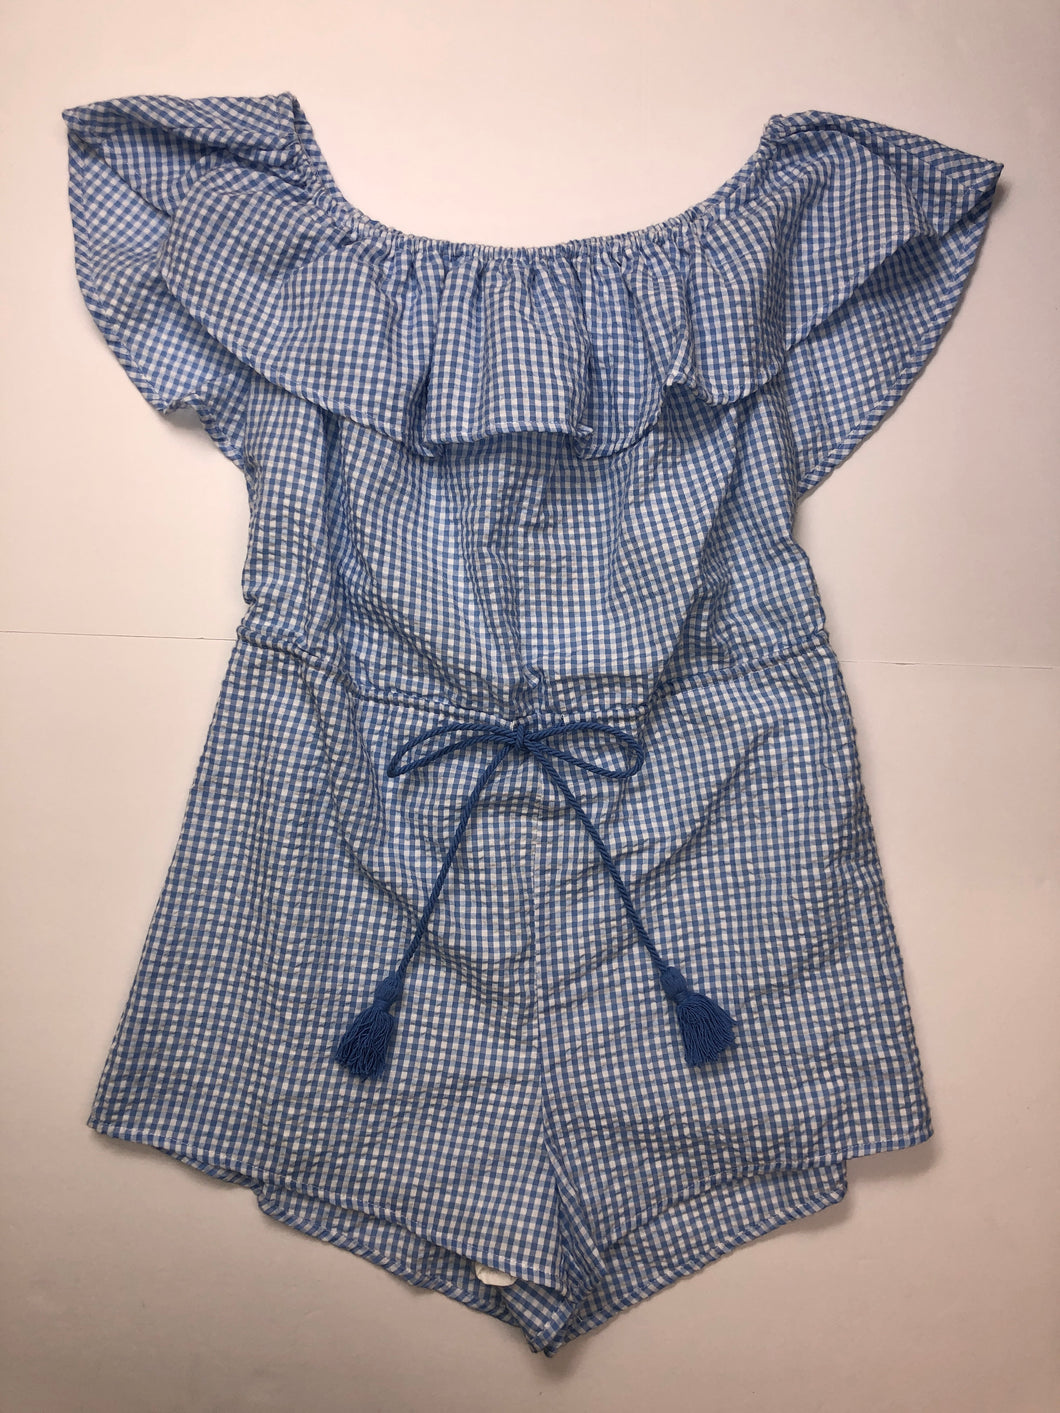 Previously Owned With Tags Women's Honey Punch Romper Size S